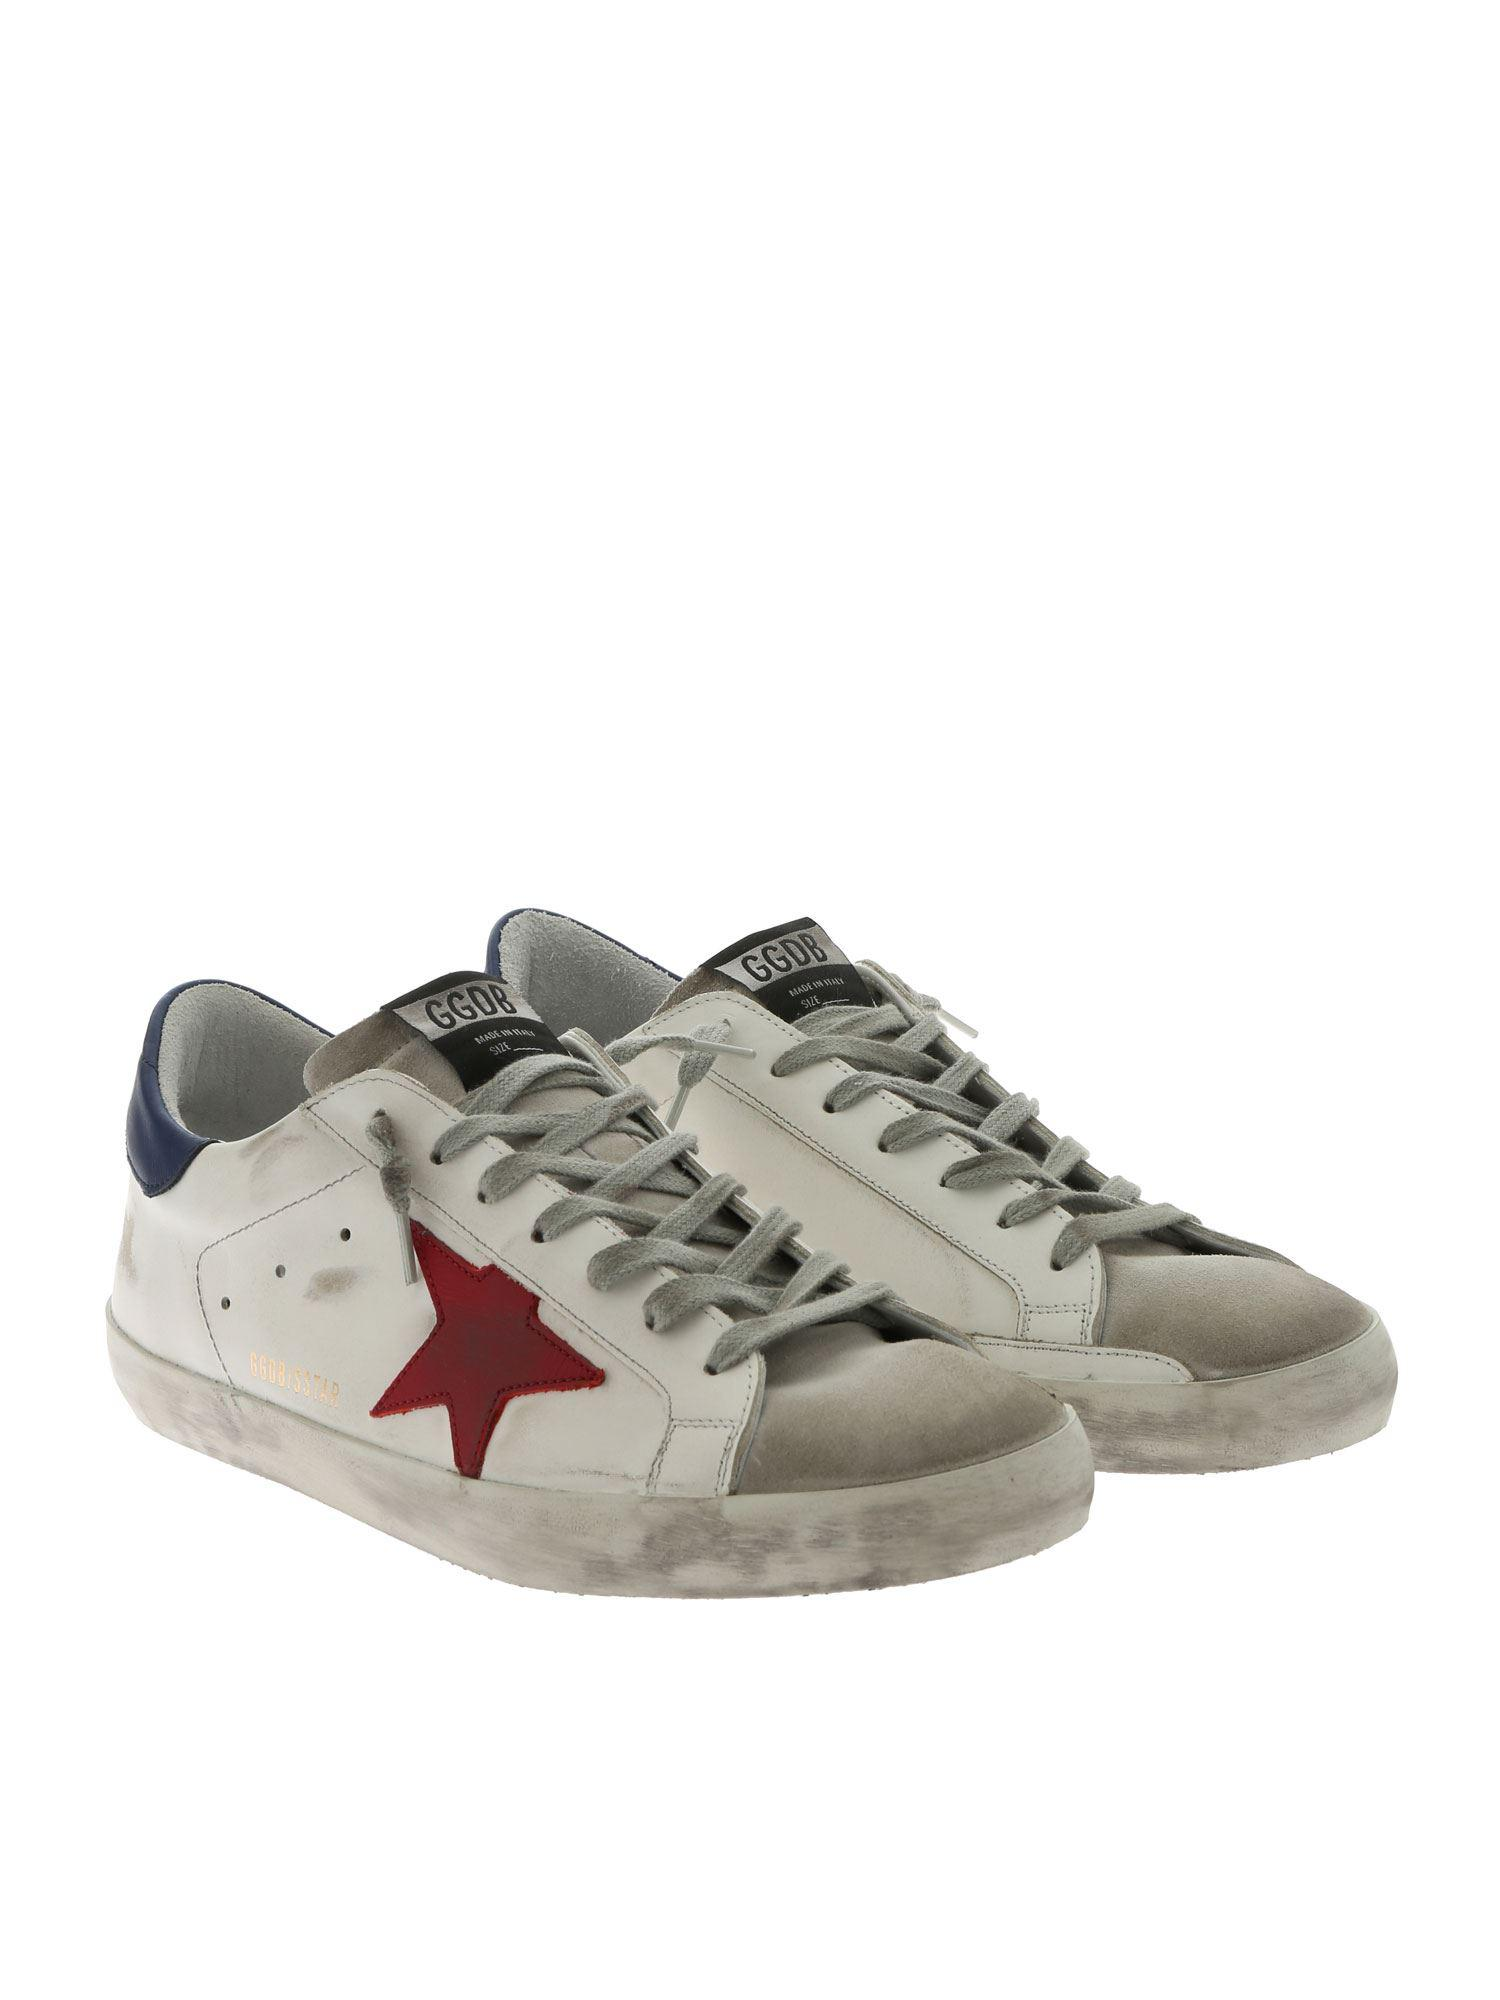 959110edf9ab9 Lyst - Golden Goose Deluxe Brand Superstar White Sneakers With Red Star in  White for Men